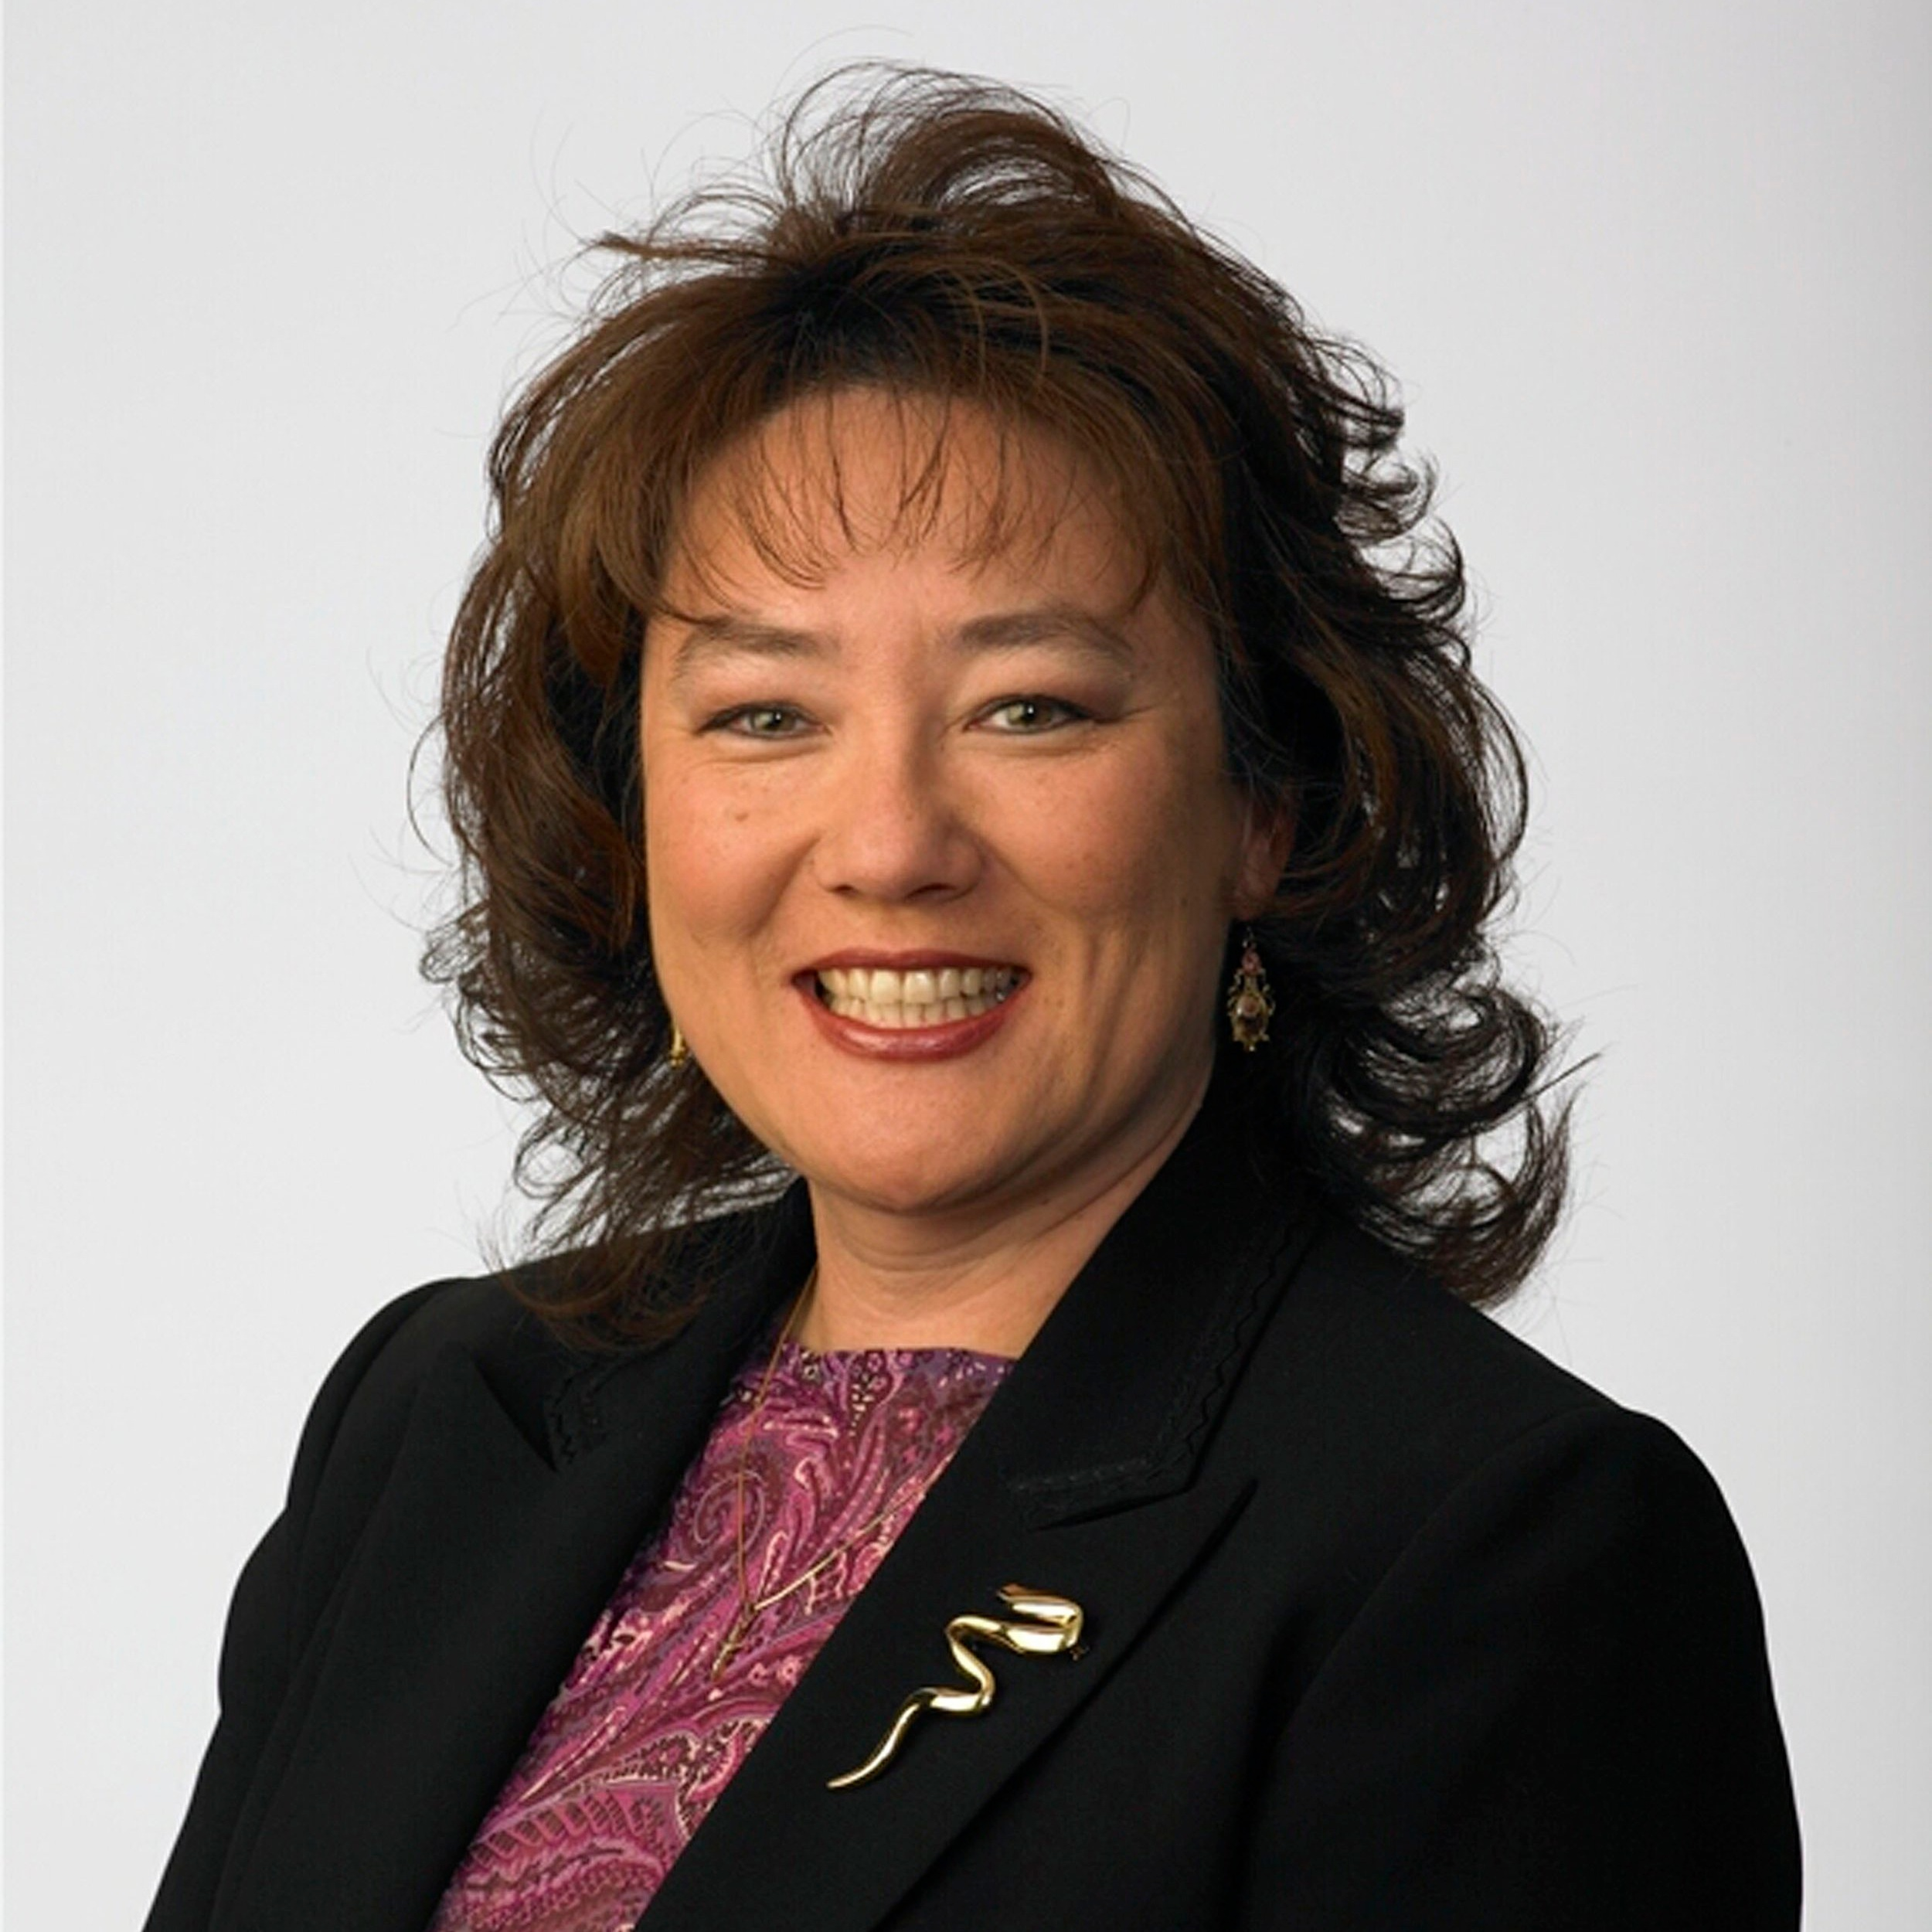 Connie Clemmons Brown, DNP, MBA, BNS CommonSpirit Health - Connie Clemmons Brown is the National Executive Clinical Leader of Patient Care Services, Clinical Excellence, Professional Practice and Nursing Operations. CommonSpirit Health has been a member of the Supportive Care Coalition through Legacy CHI and Legacy Dignity since our founding in 1994.